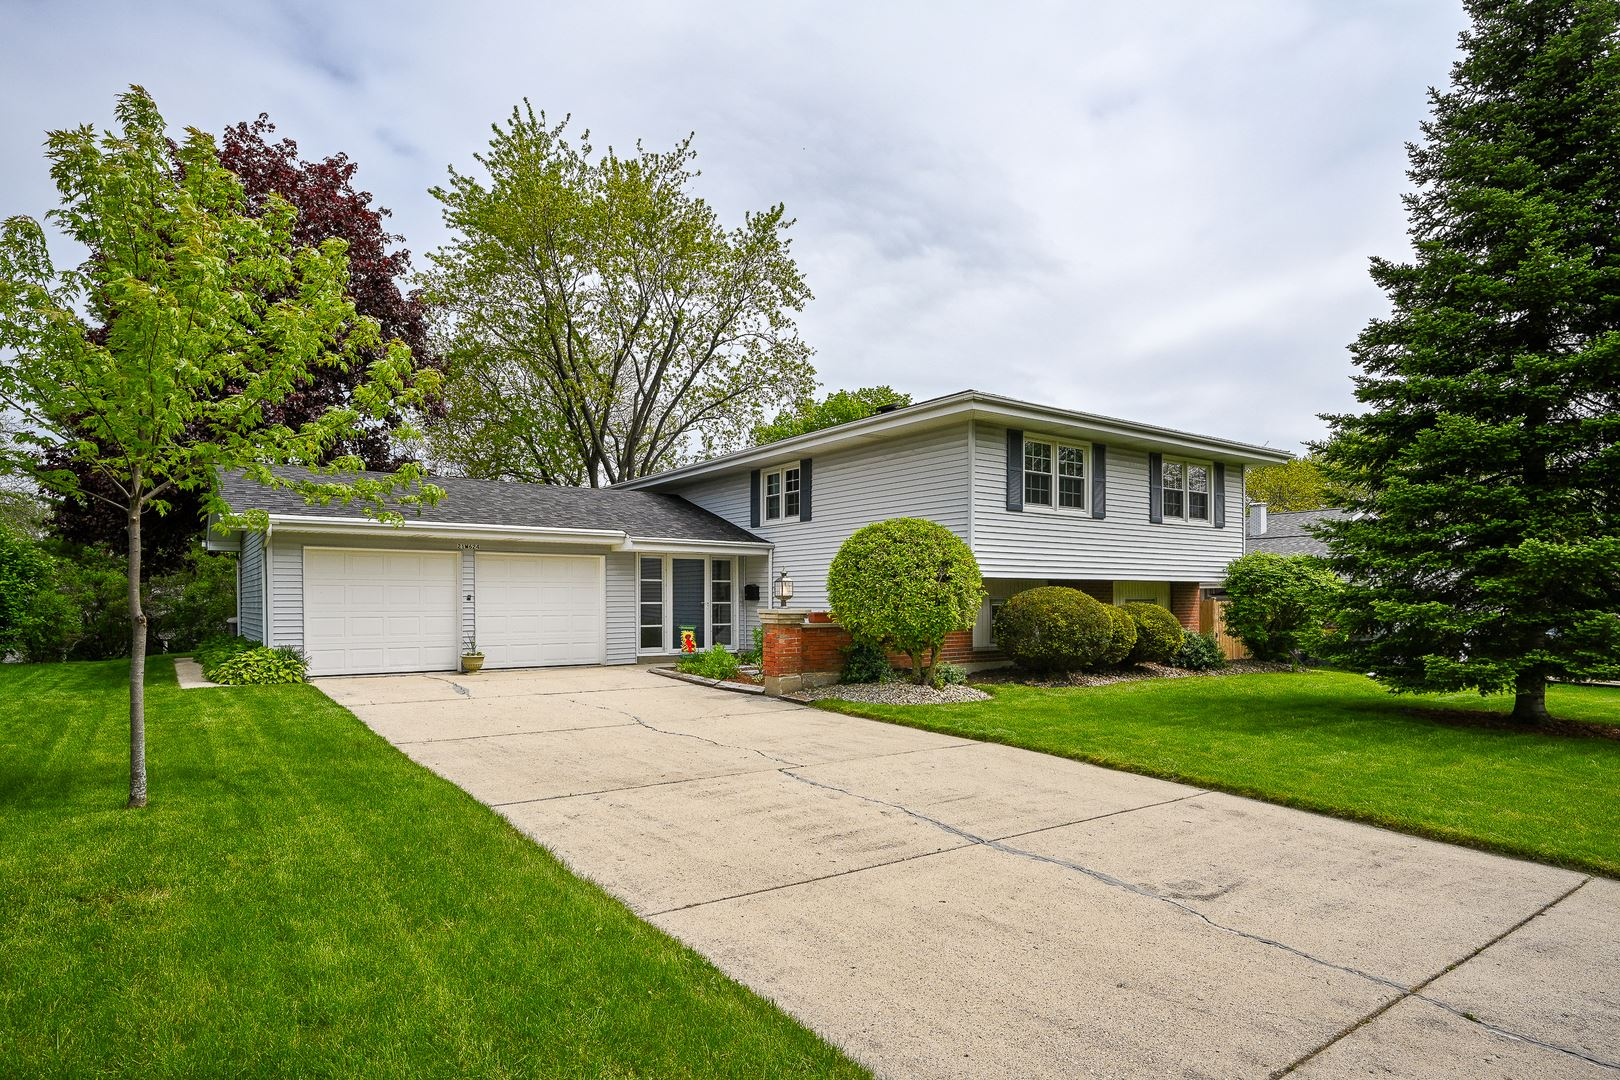 21W624 Kensington Road, Glen Ellyn, IL 60137 - #: 10722928